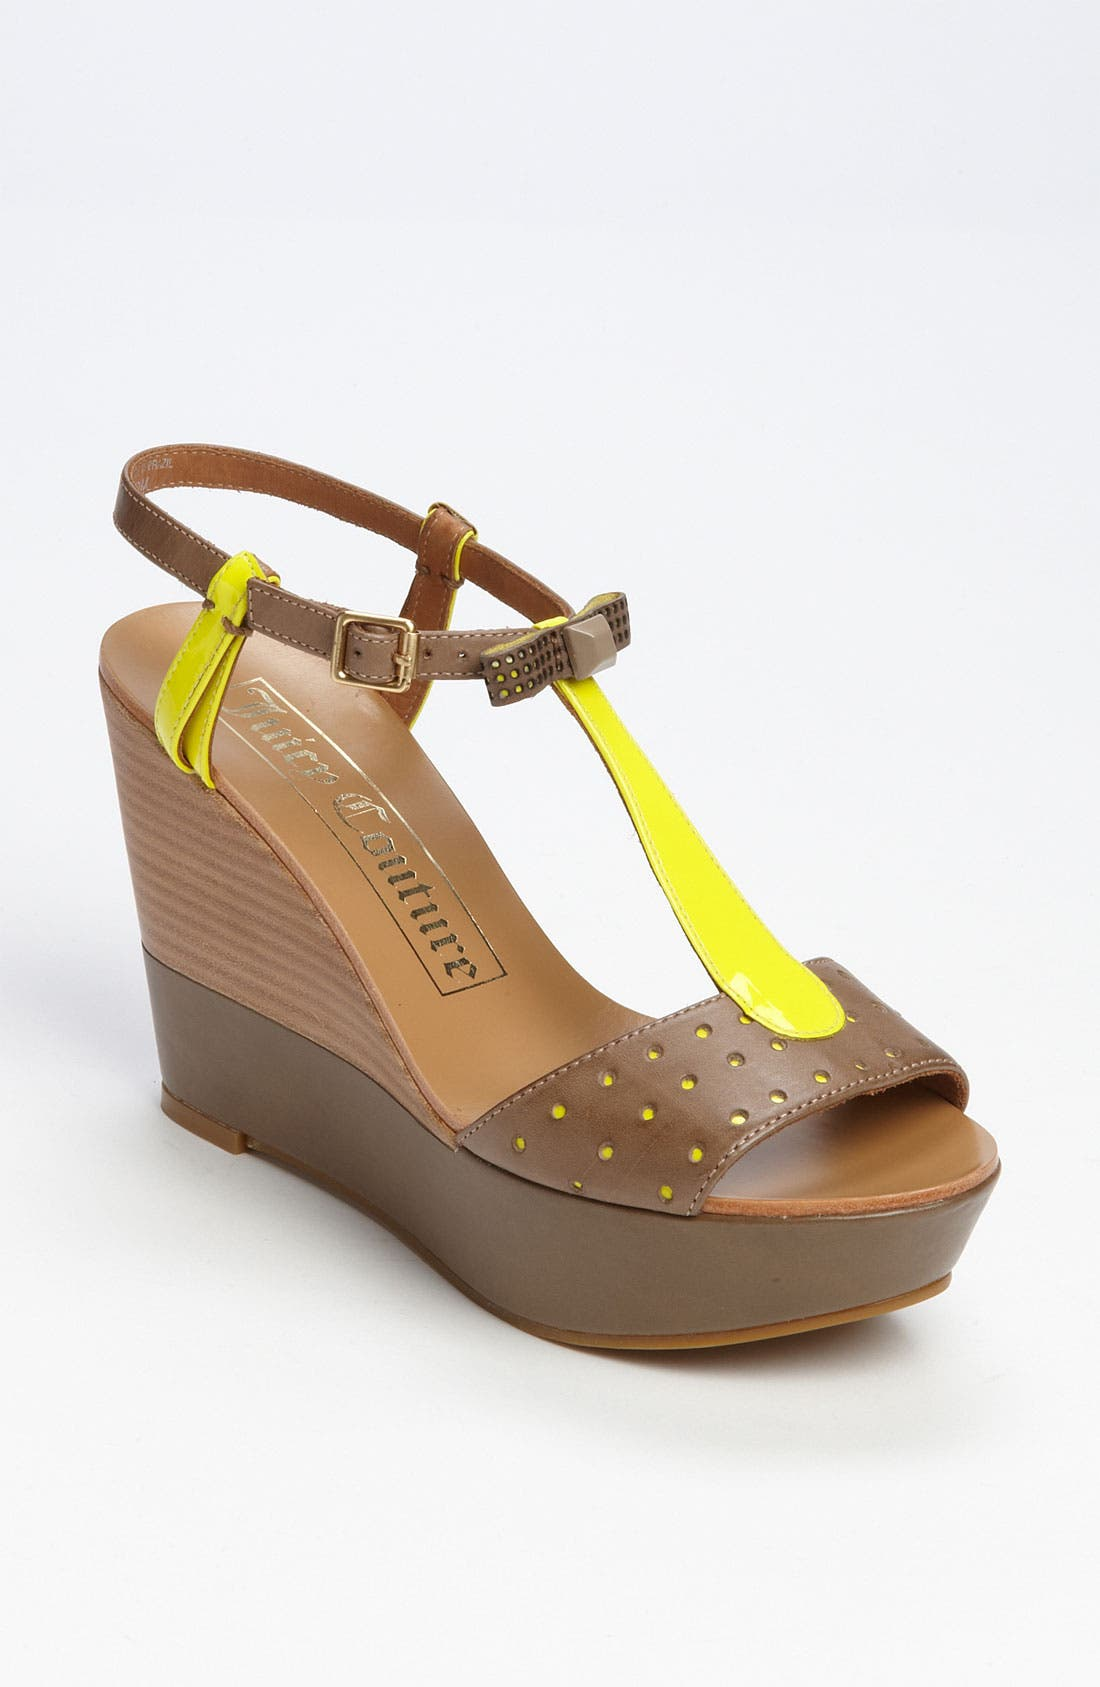 Alternate Image 1 Selected - Juicy Couture 'Kati' Sandal